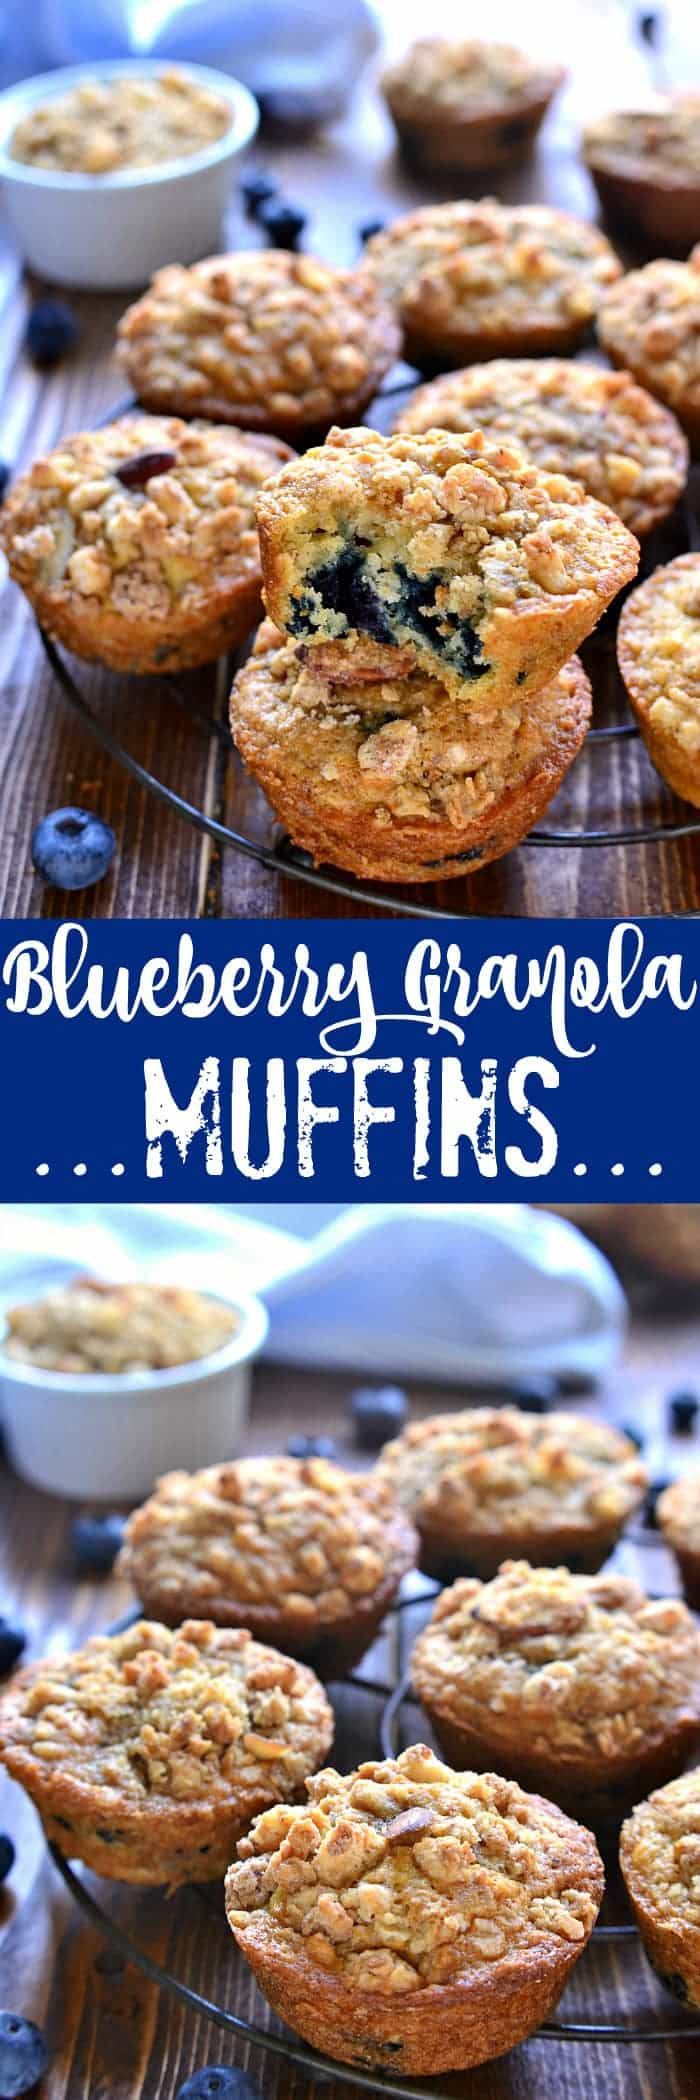 These Blueberry Granola Muffins are a quick breakfast packed full of sweet blueberries, vanilla almond granola then topped with granola streusel for a crunchy finish.